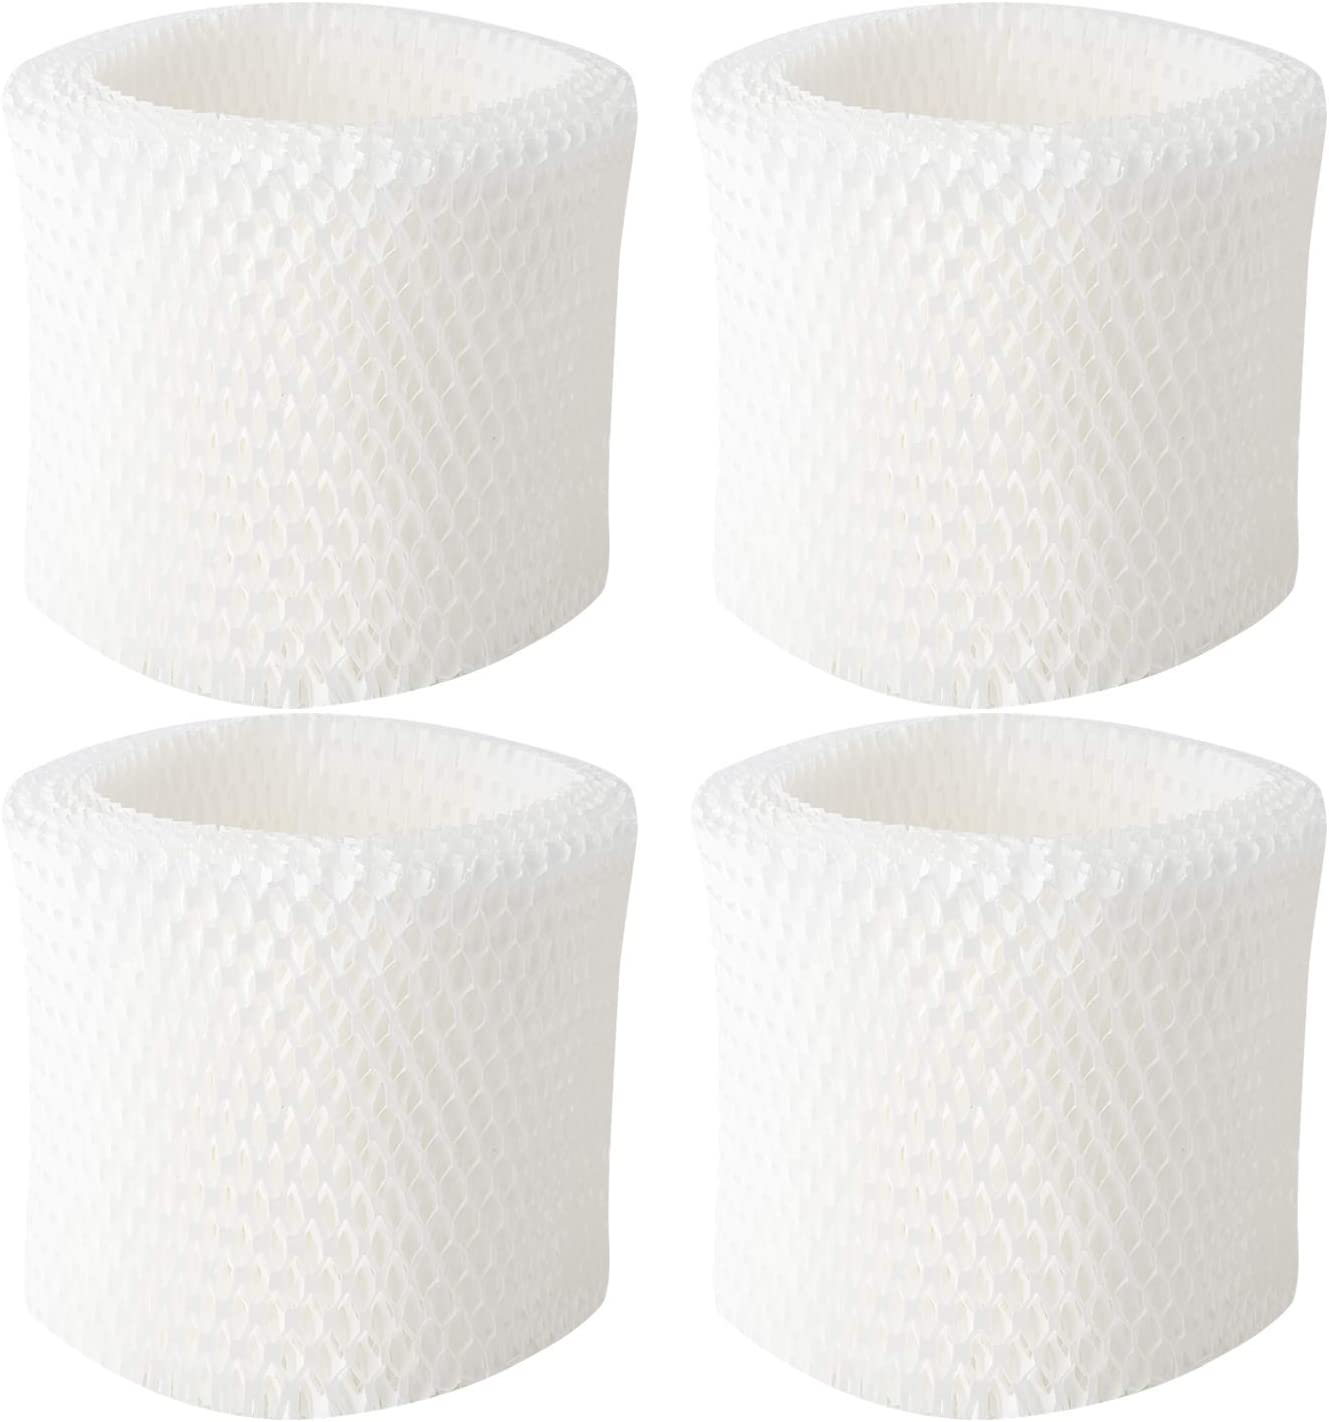 Colorfullife 4 Pack Humidifier Wicking Filters for Honeywell Humidifier Replacement Filter HAC-504AW, HAC504V1,HAC-504 Filter A